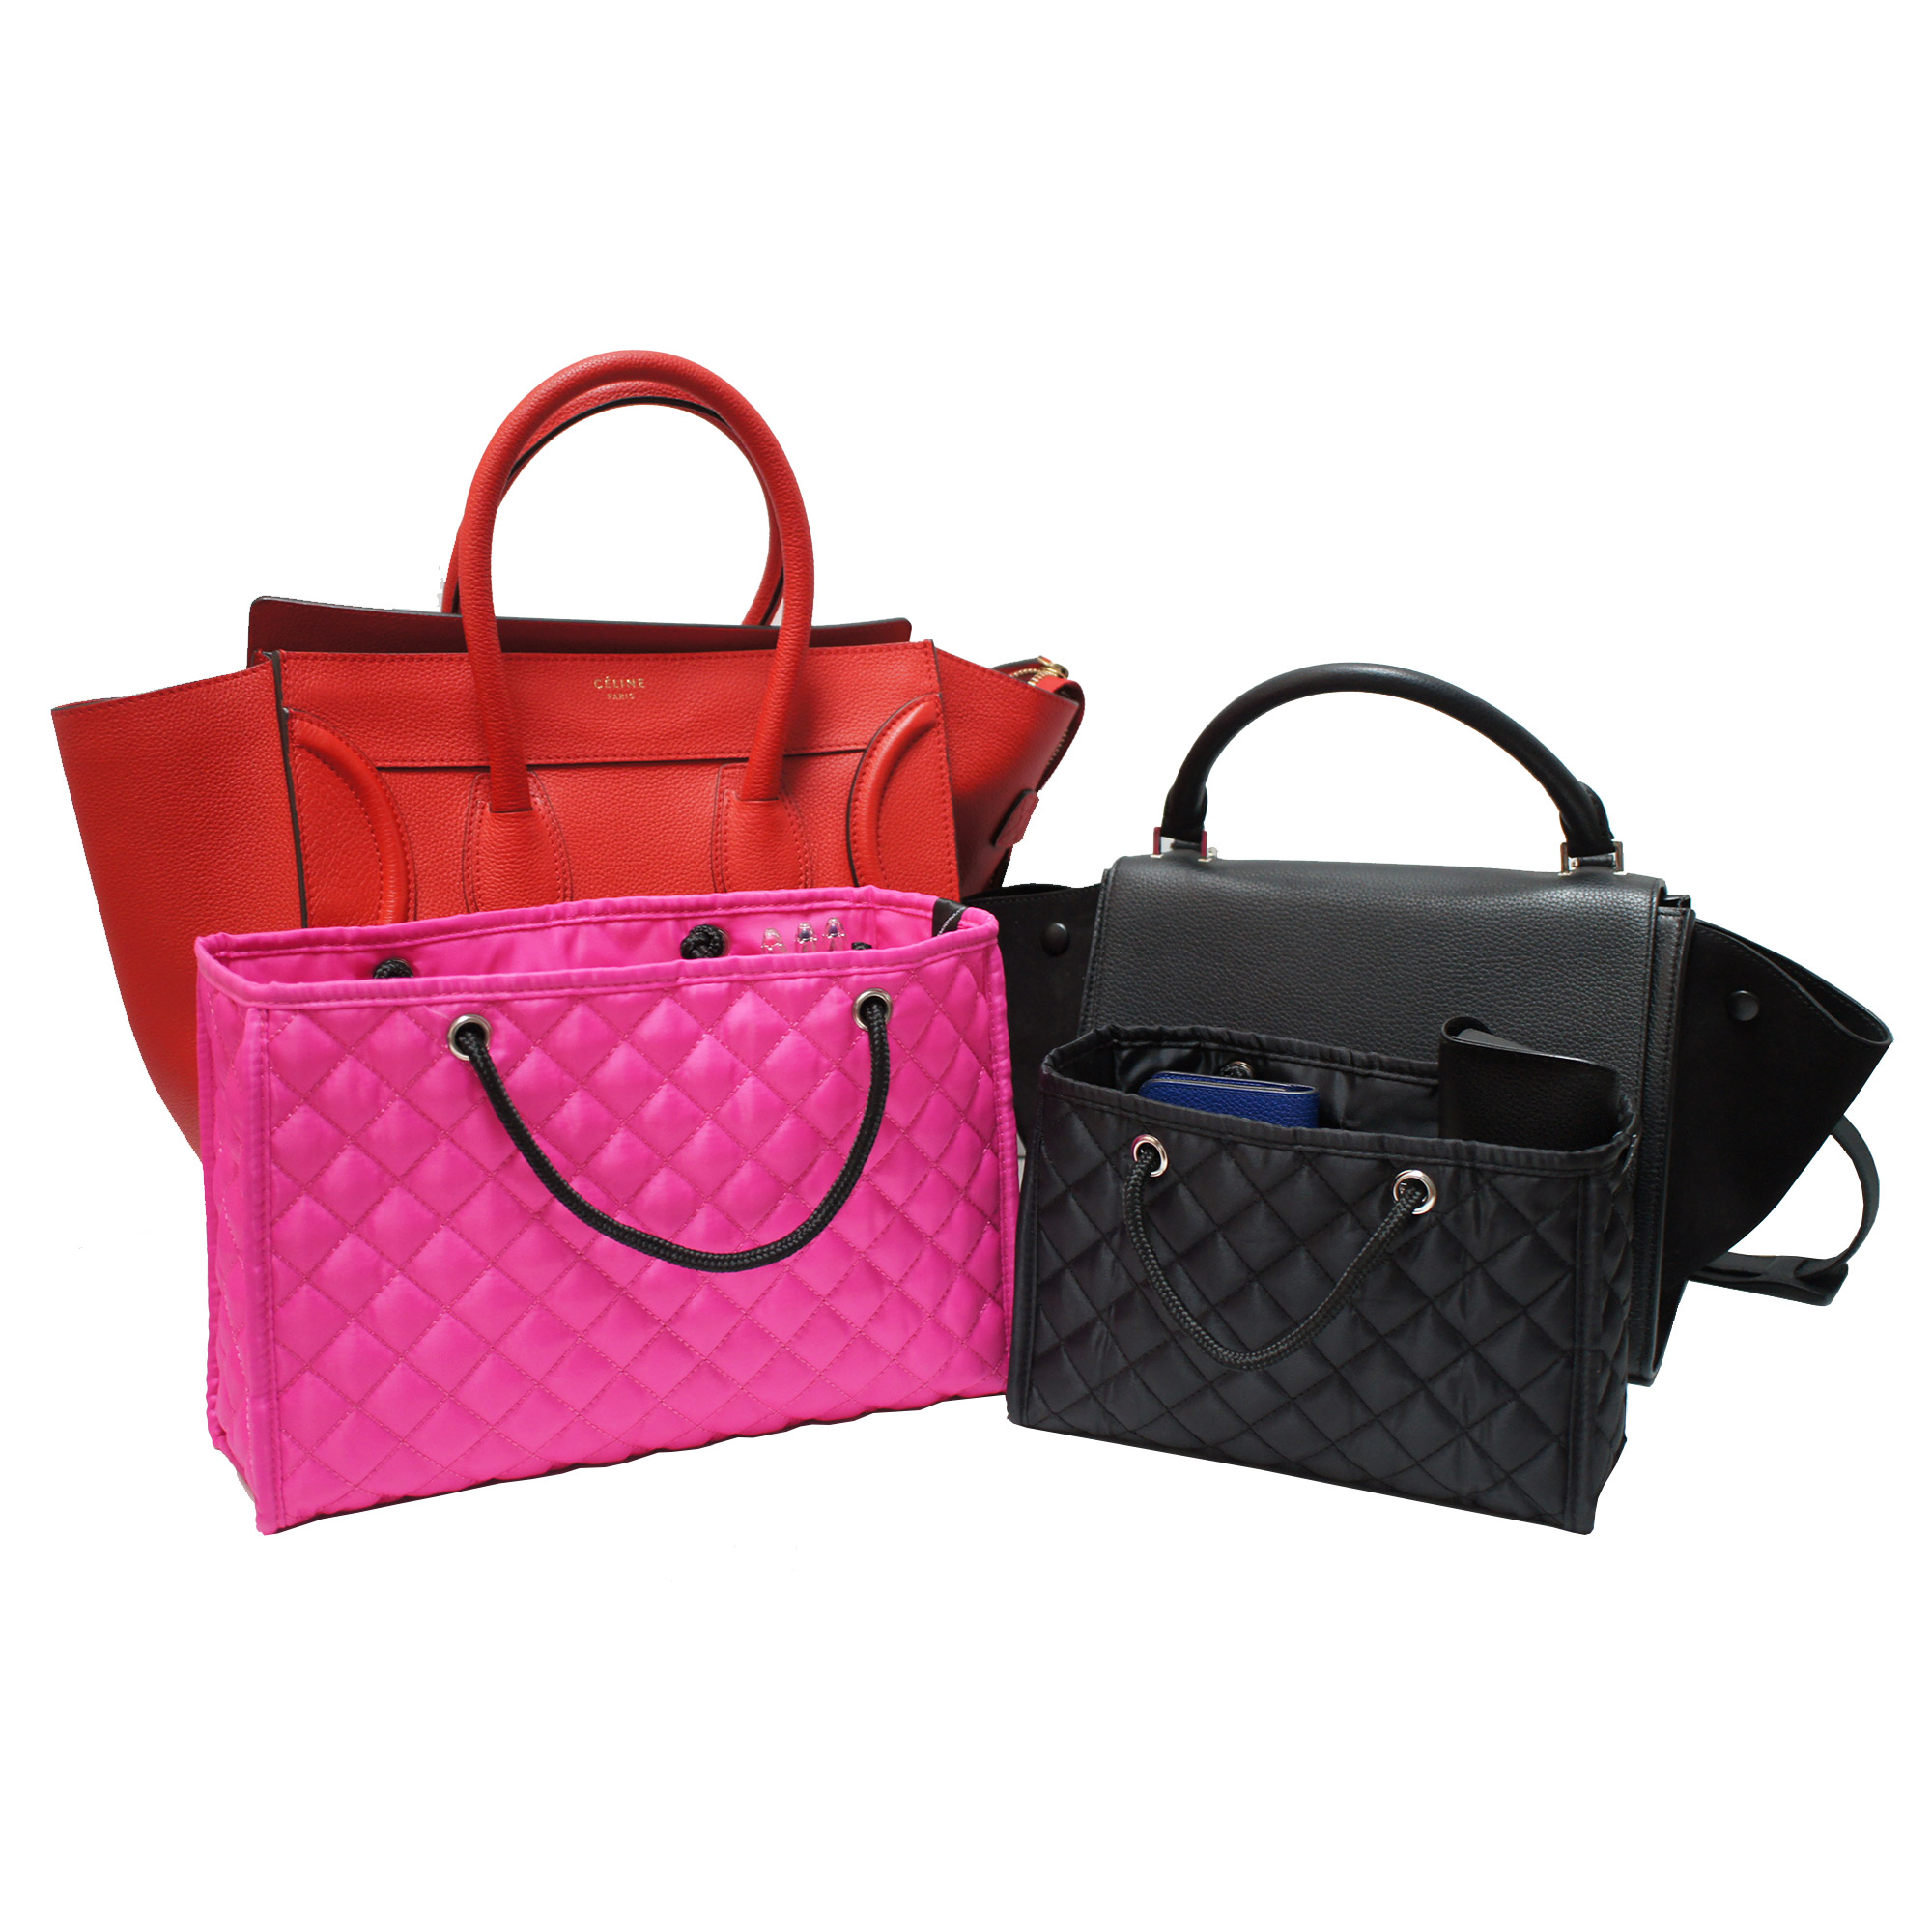 Zoe Quilted Handbag Organizer Insert with Removable Base | | My ... : quilted bags - Adamdwight.com